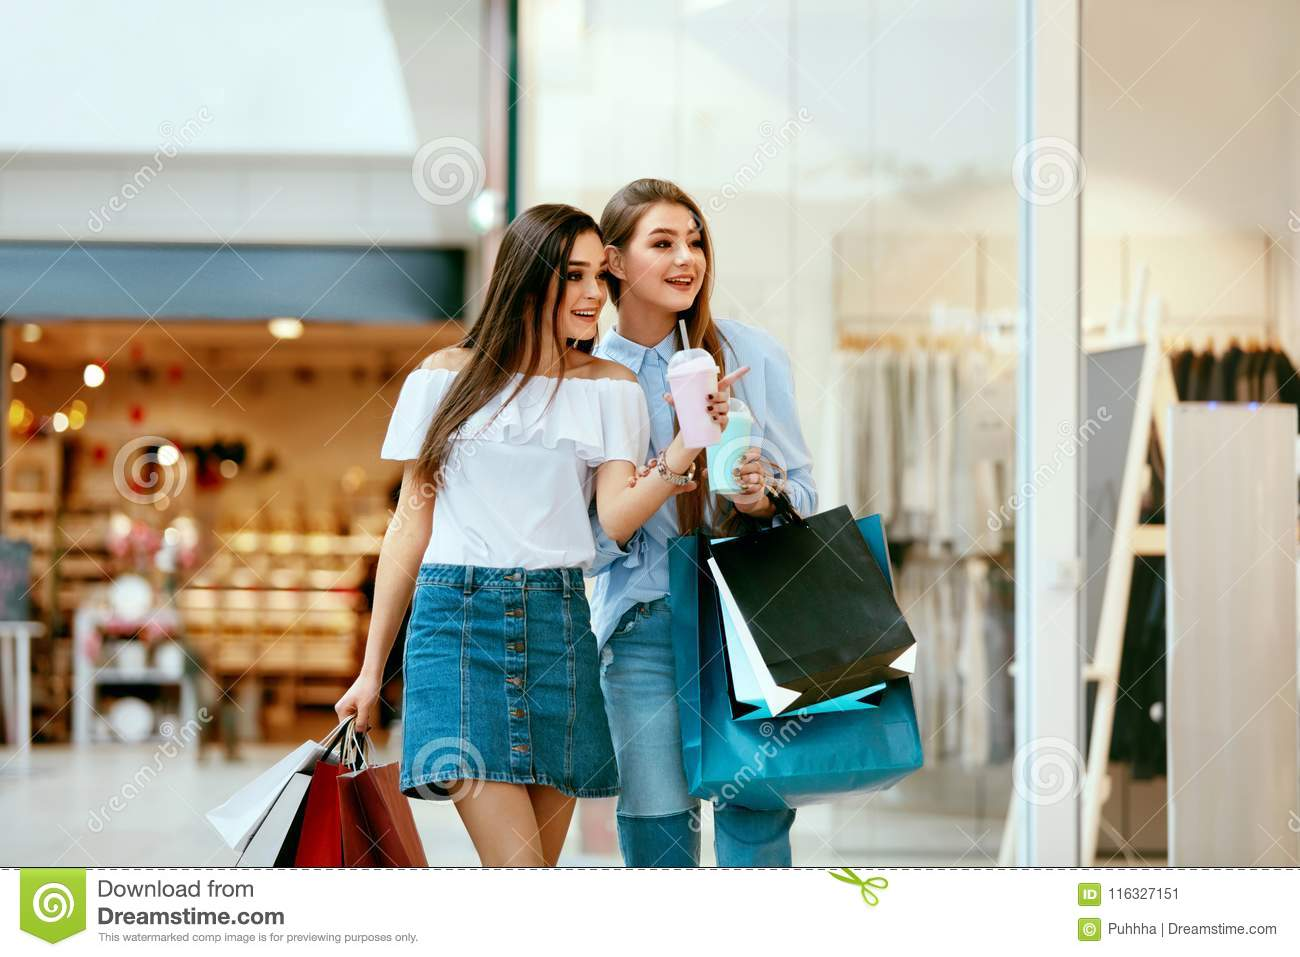 689ee6993 Girls Shopping. Beautiful Happy Female Friends With Colorful Bags Walking  In Mall. High Resolution.